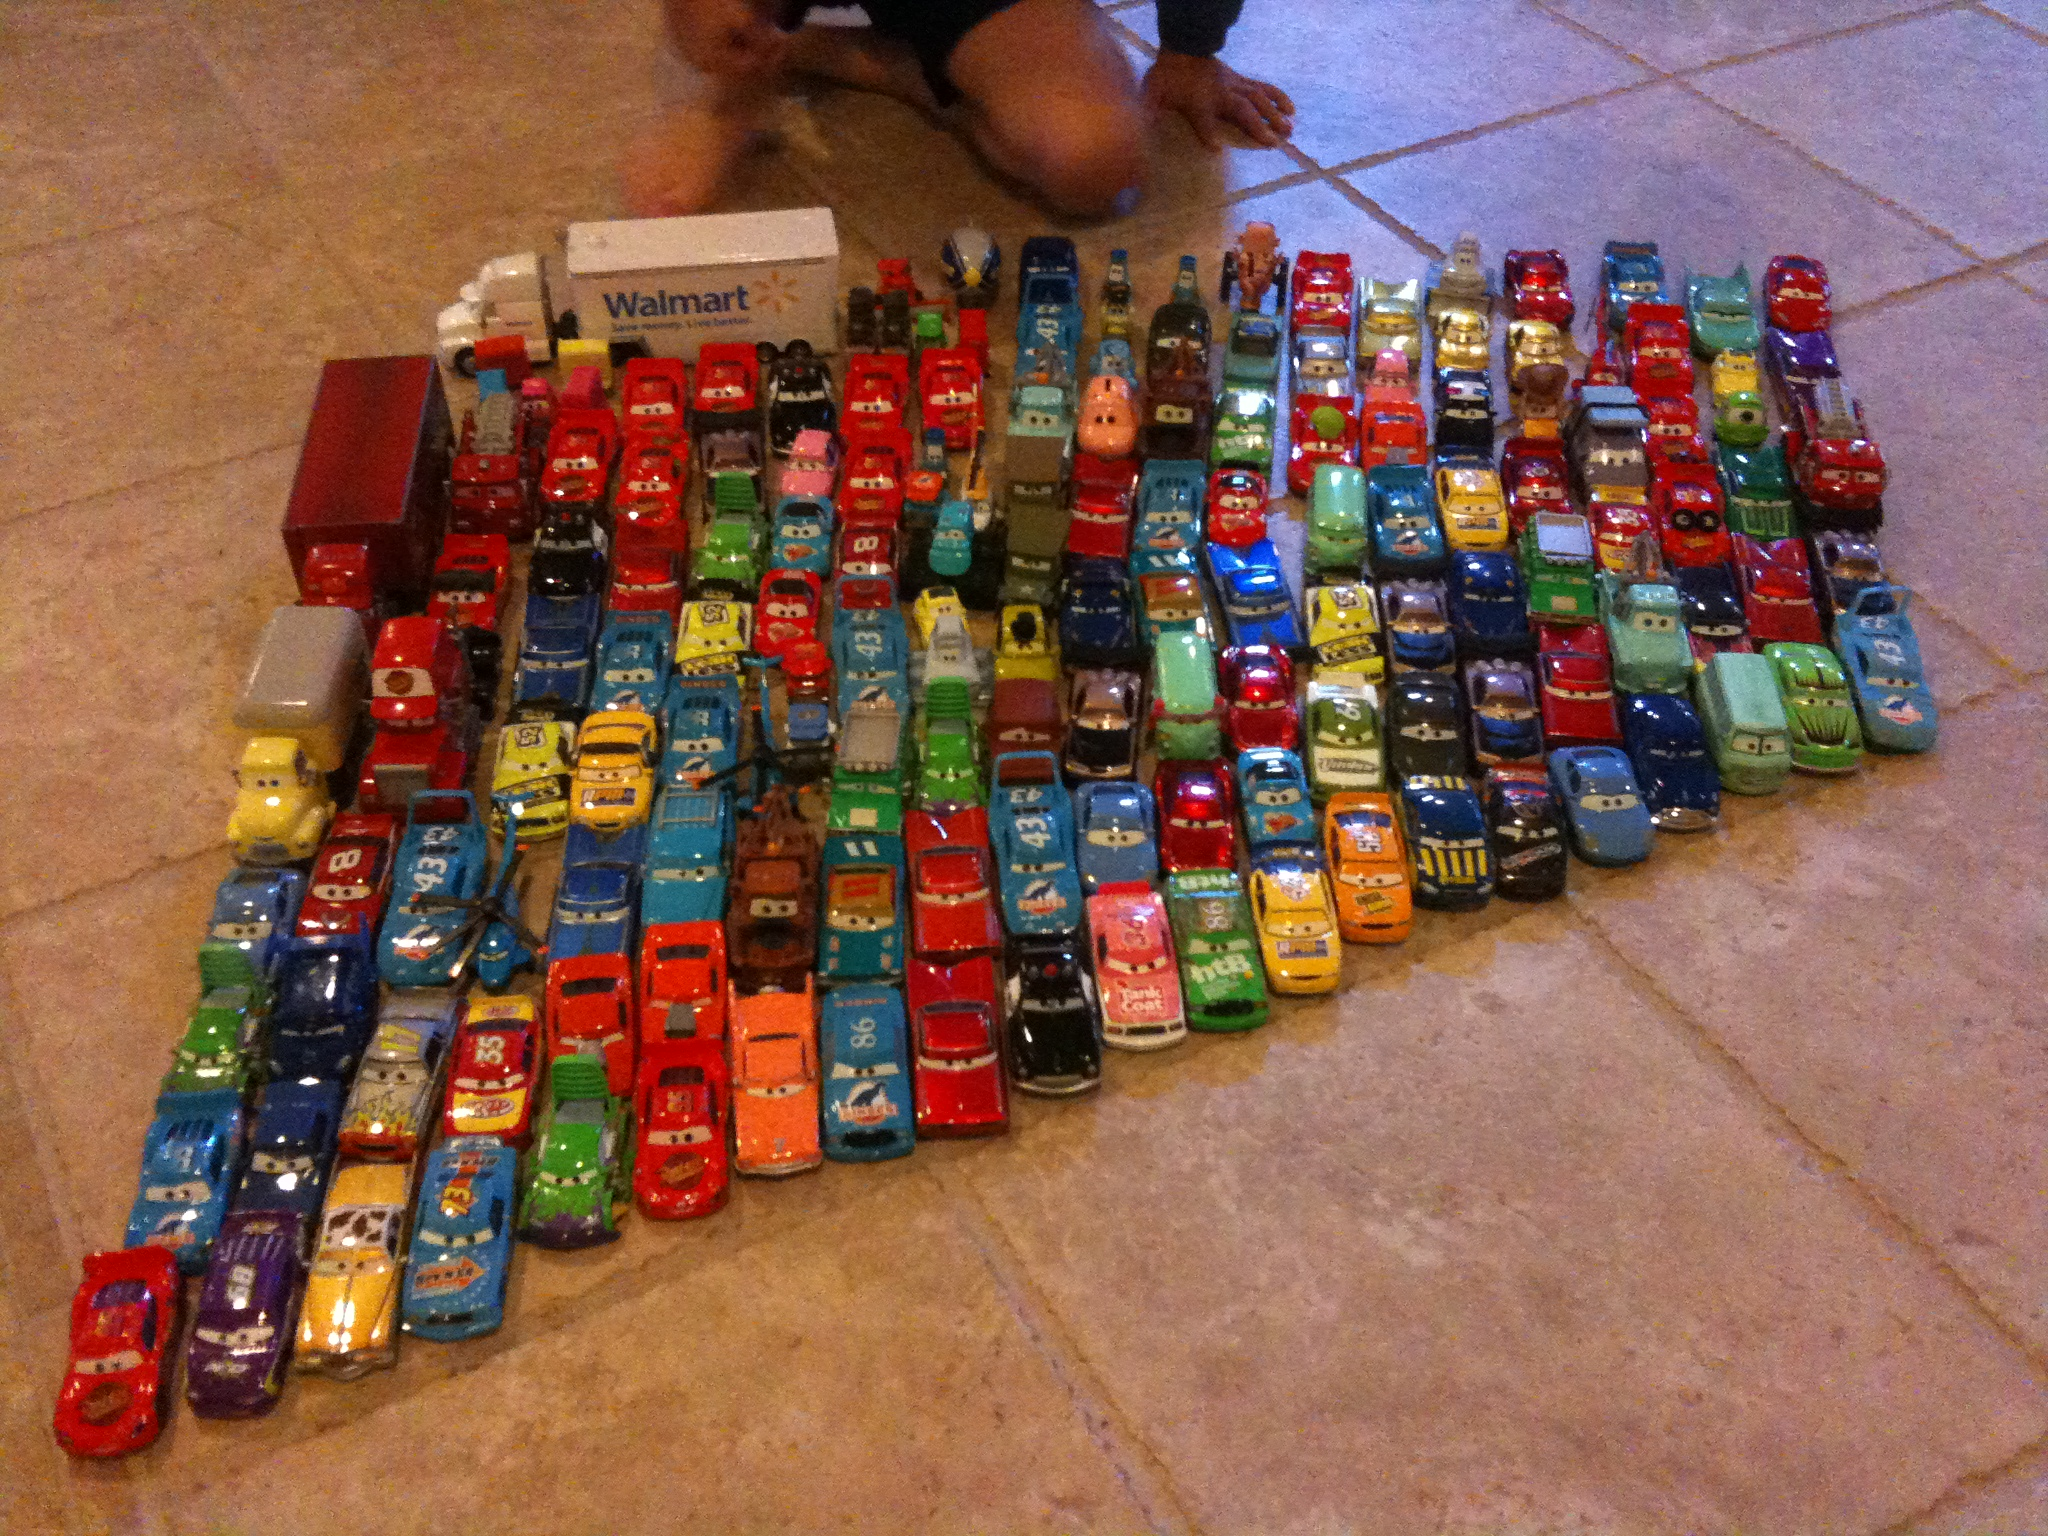 Frank Diecast Is Not Only In Scale With Mattels World Of Cars